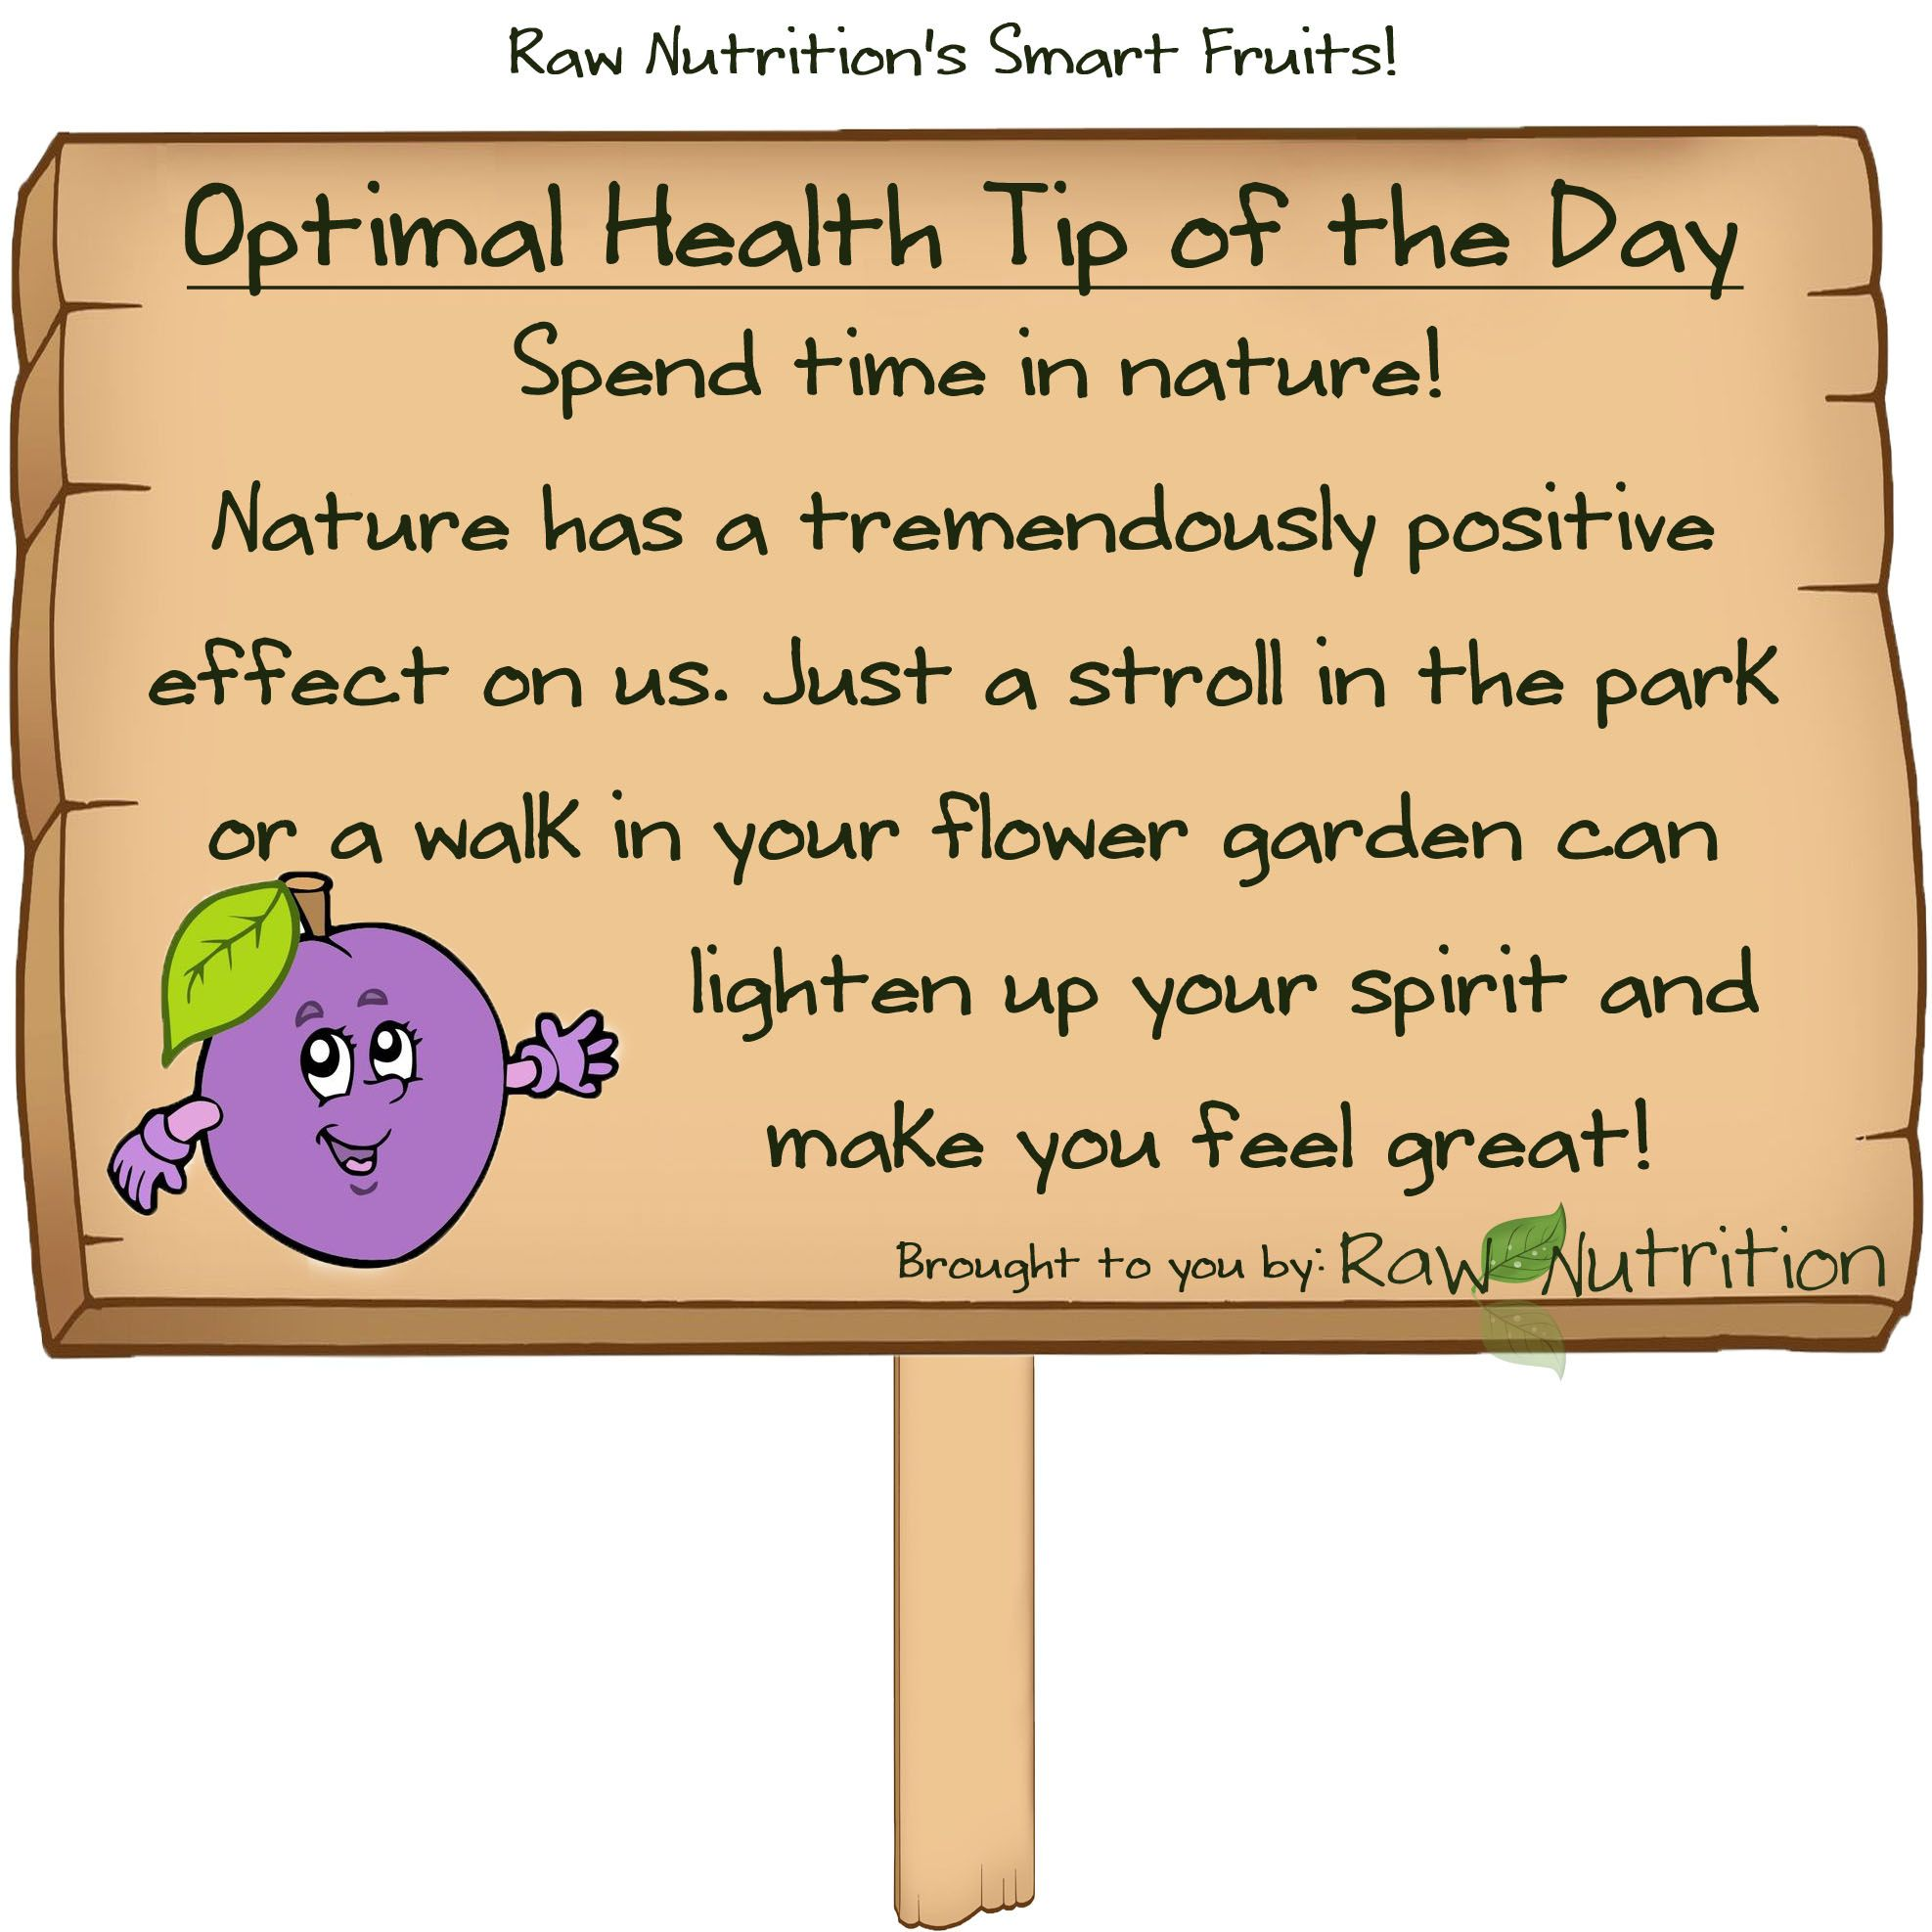 Optimal health tip of the day health tips health